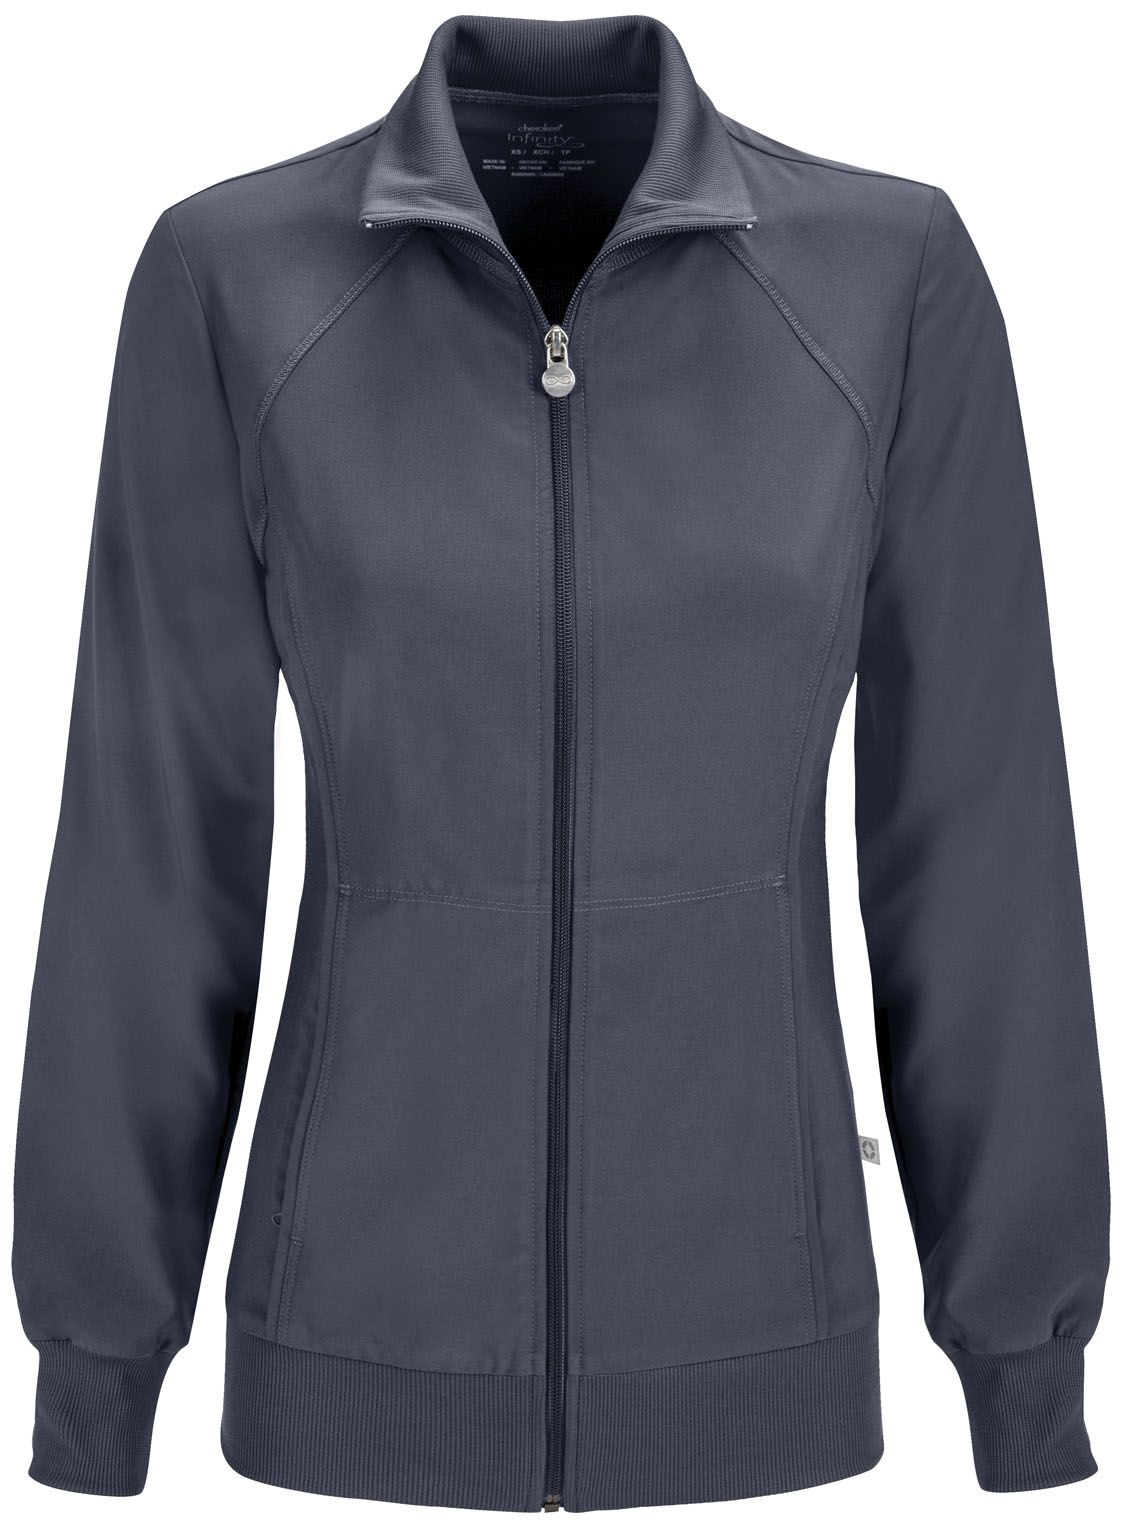 Cherokee For Less >> Infinity By Cherokee Zip Front Warm Up Jacket Cherokee 4 Less